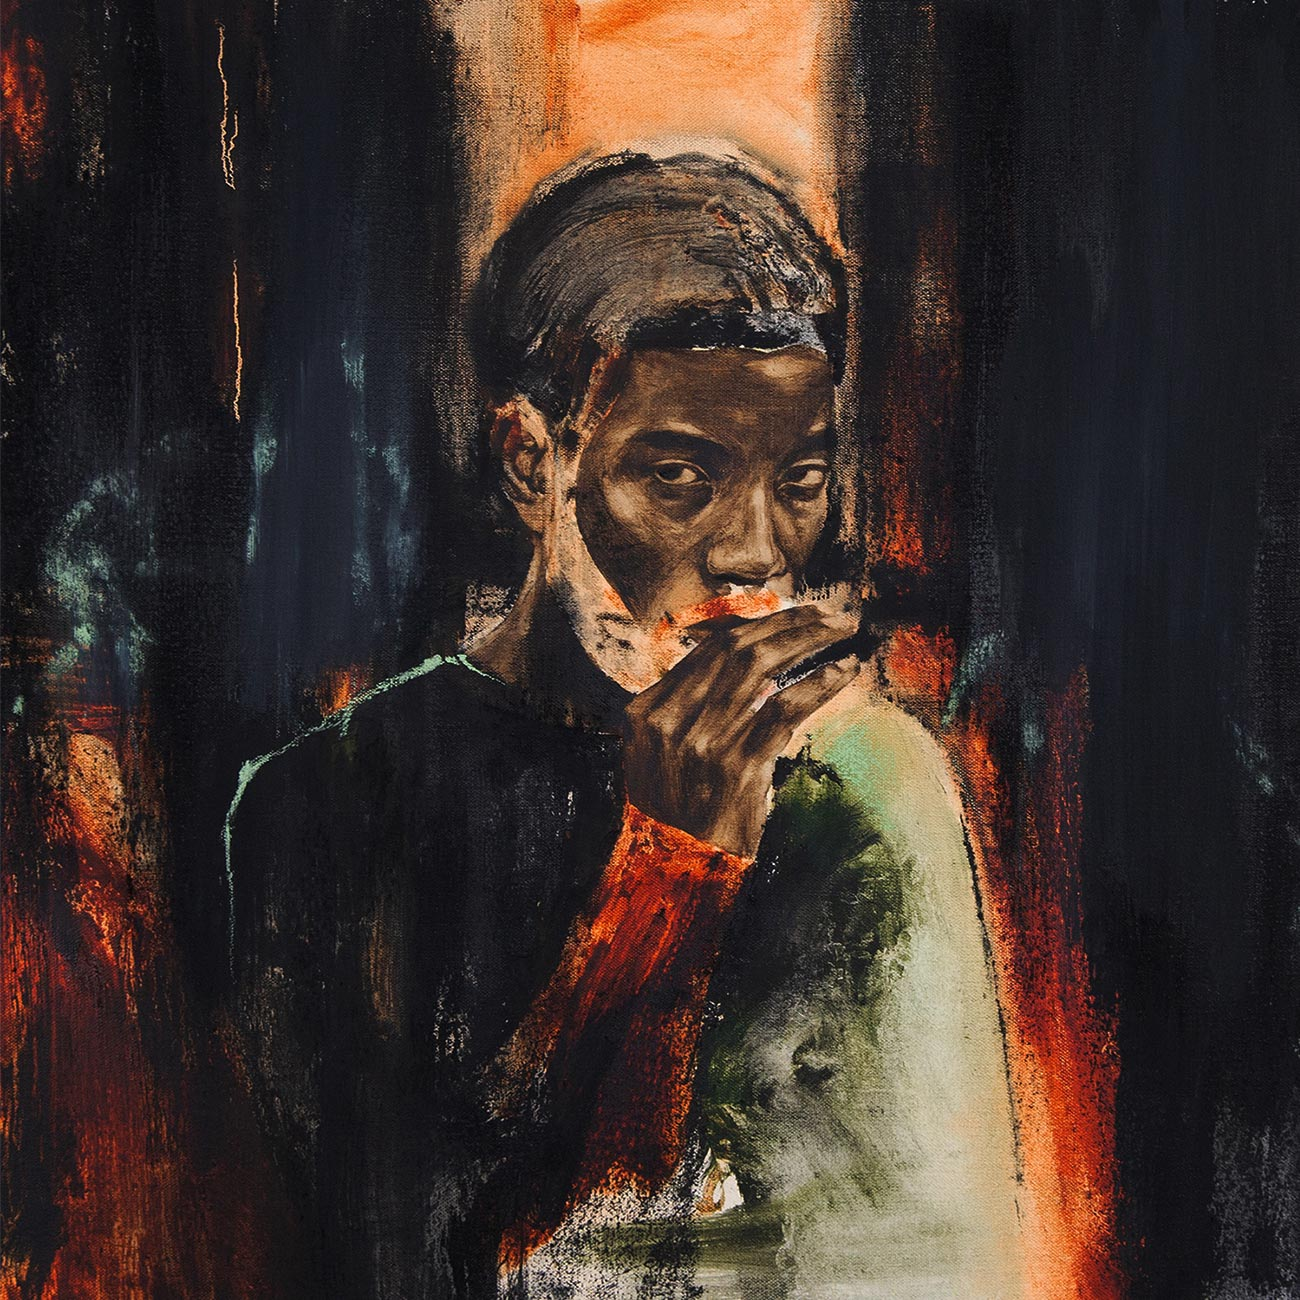 Devil's Pie, John Singletary, 2019, Oil and charcoal on canvas, 23 x 23